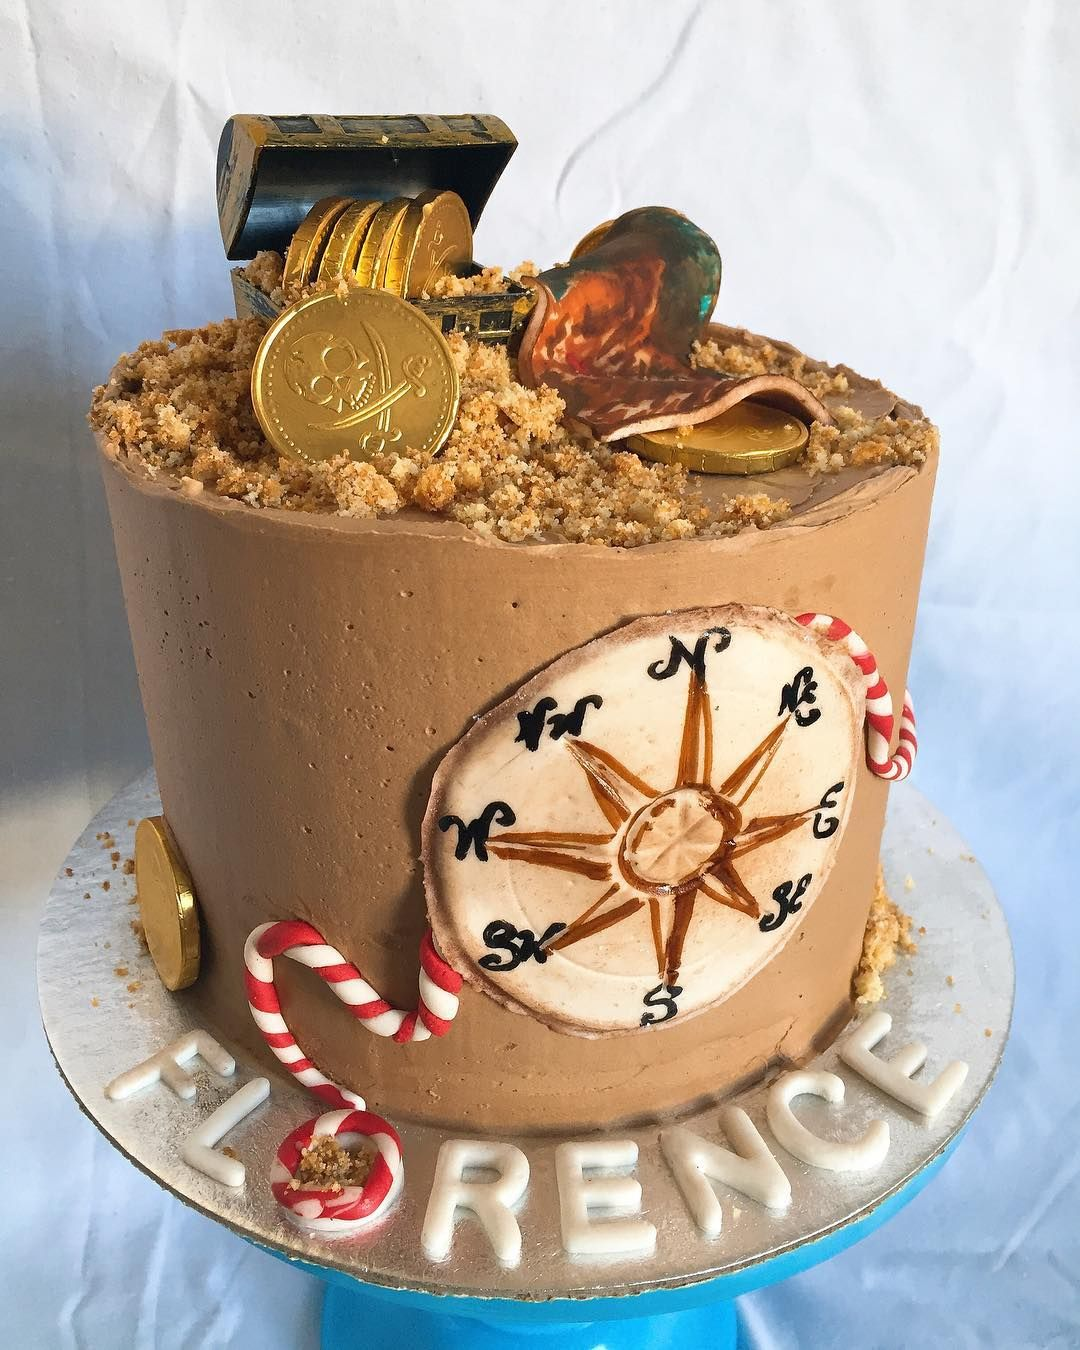 Pirate themed chocolate cake with homemade marshmallow fondant details | Den Bake Shop (@denbakeshop) • #denbakeshop #customcakes #themecakes #cakesforkids #pirateparties